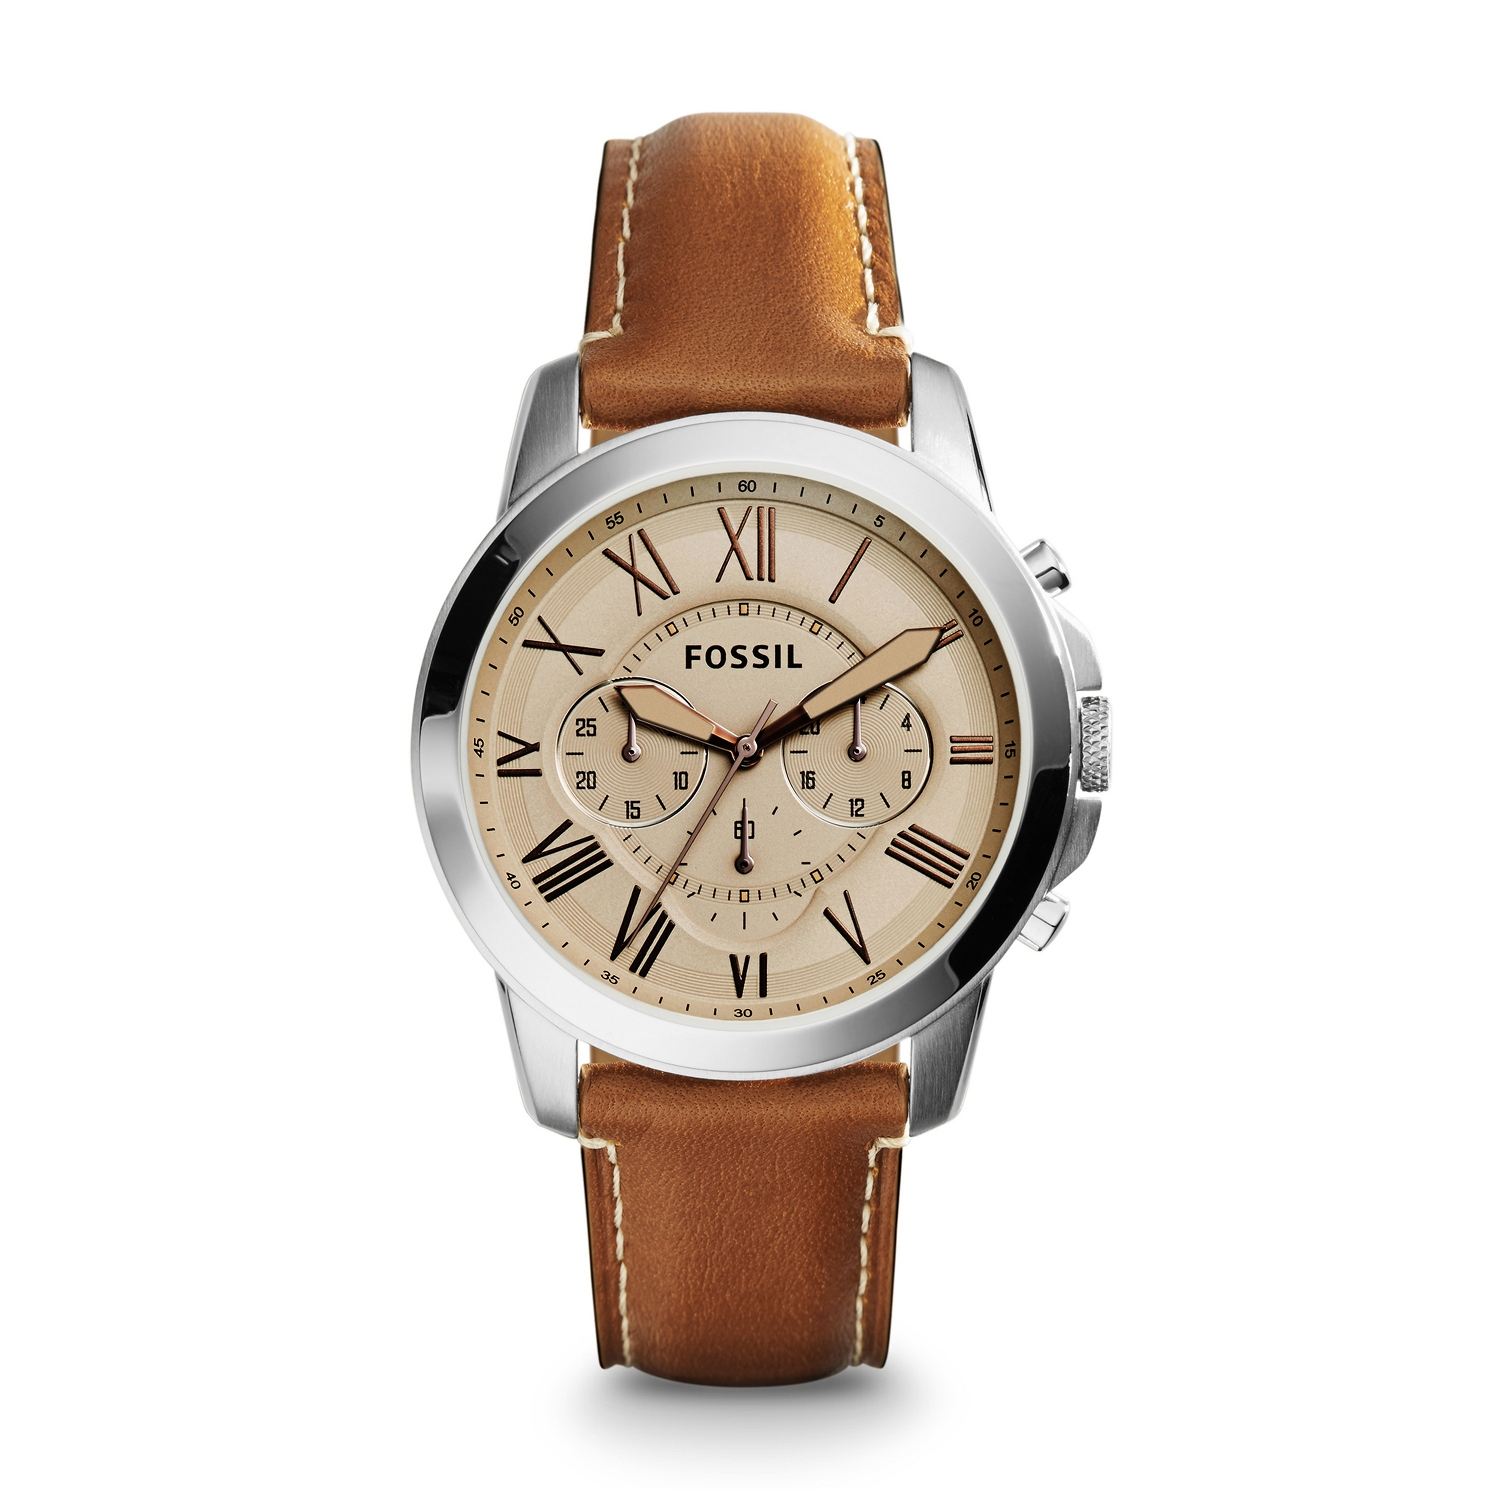 Personalized Watch - 70th Birthday Gift Ideas for Dad